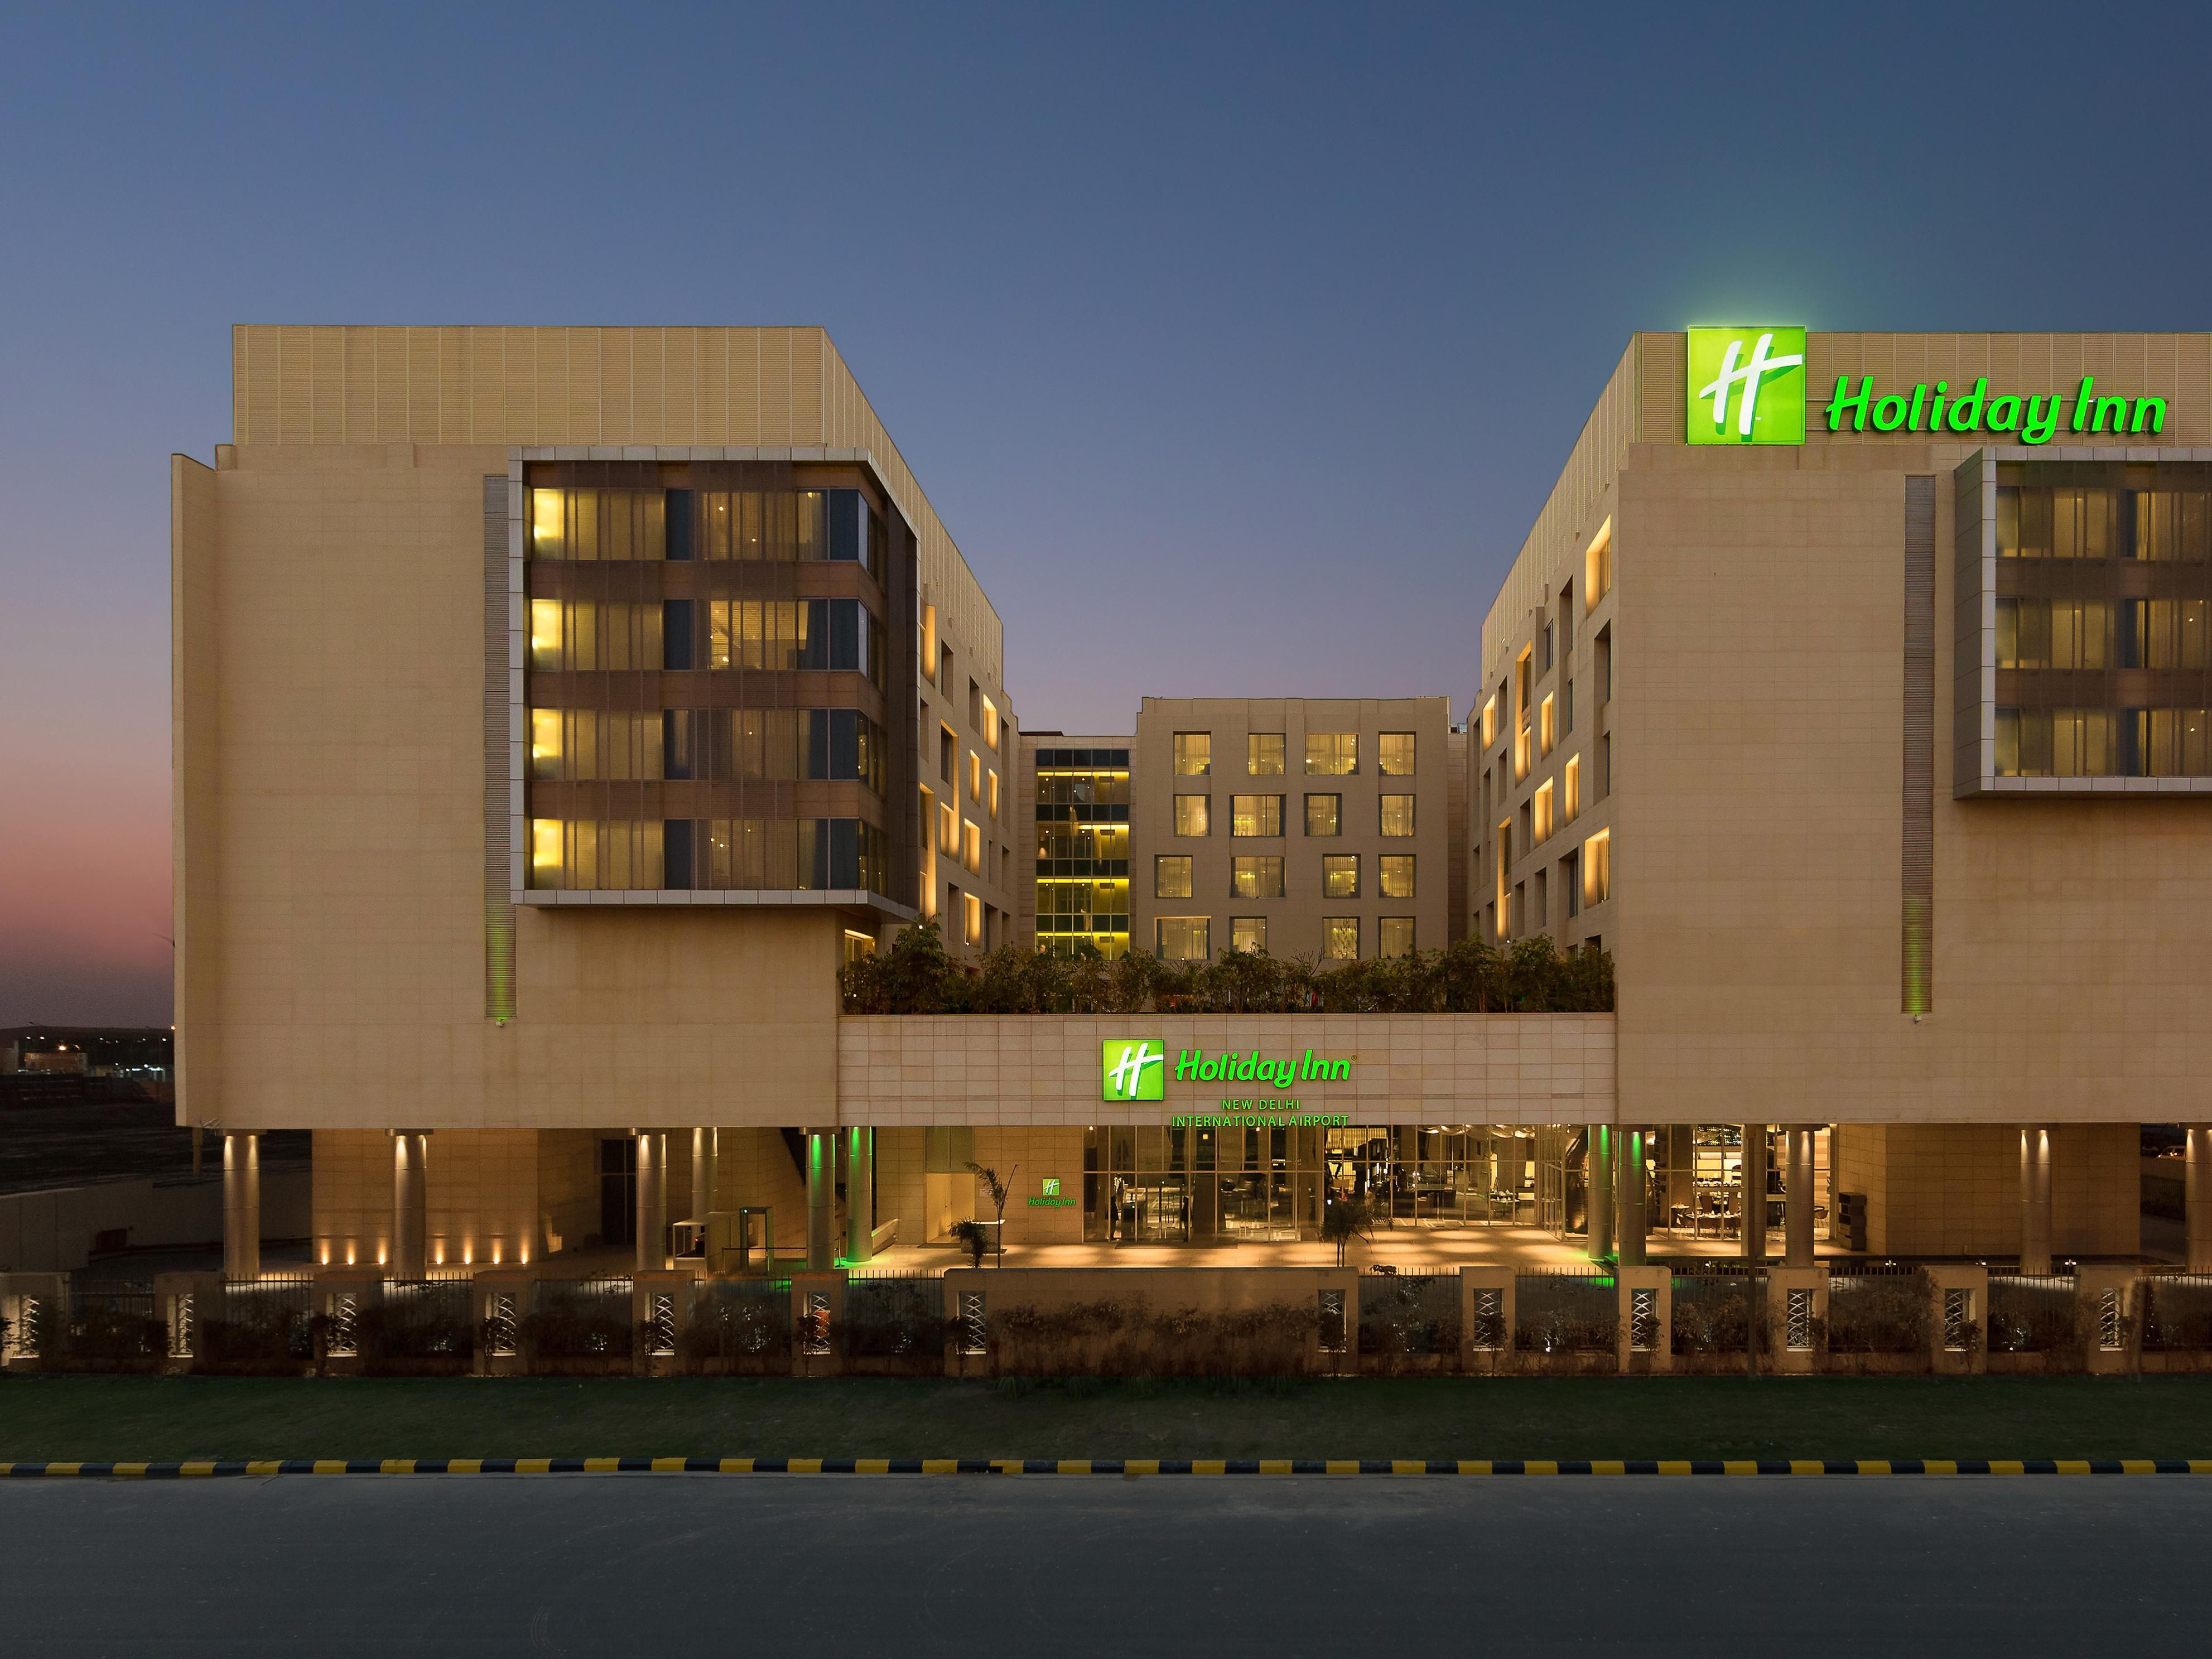 Ihg Is Best Hotel In New Delhi Airport We Are Providing Best Facility At The Affordable Price Ihg Has Best Accommodation Near New Delhi Airport Delhi Airport